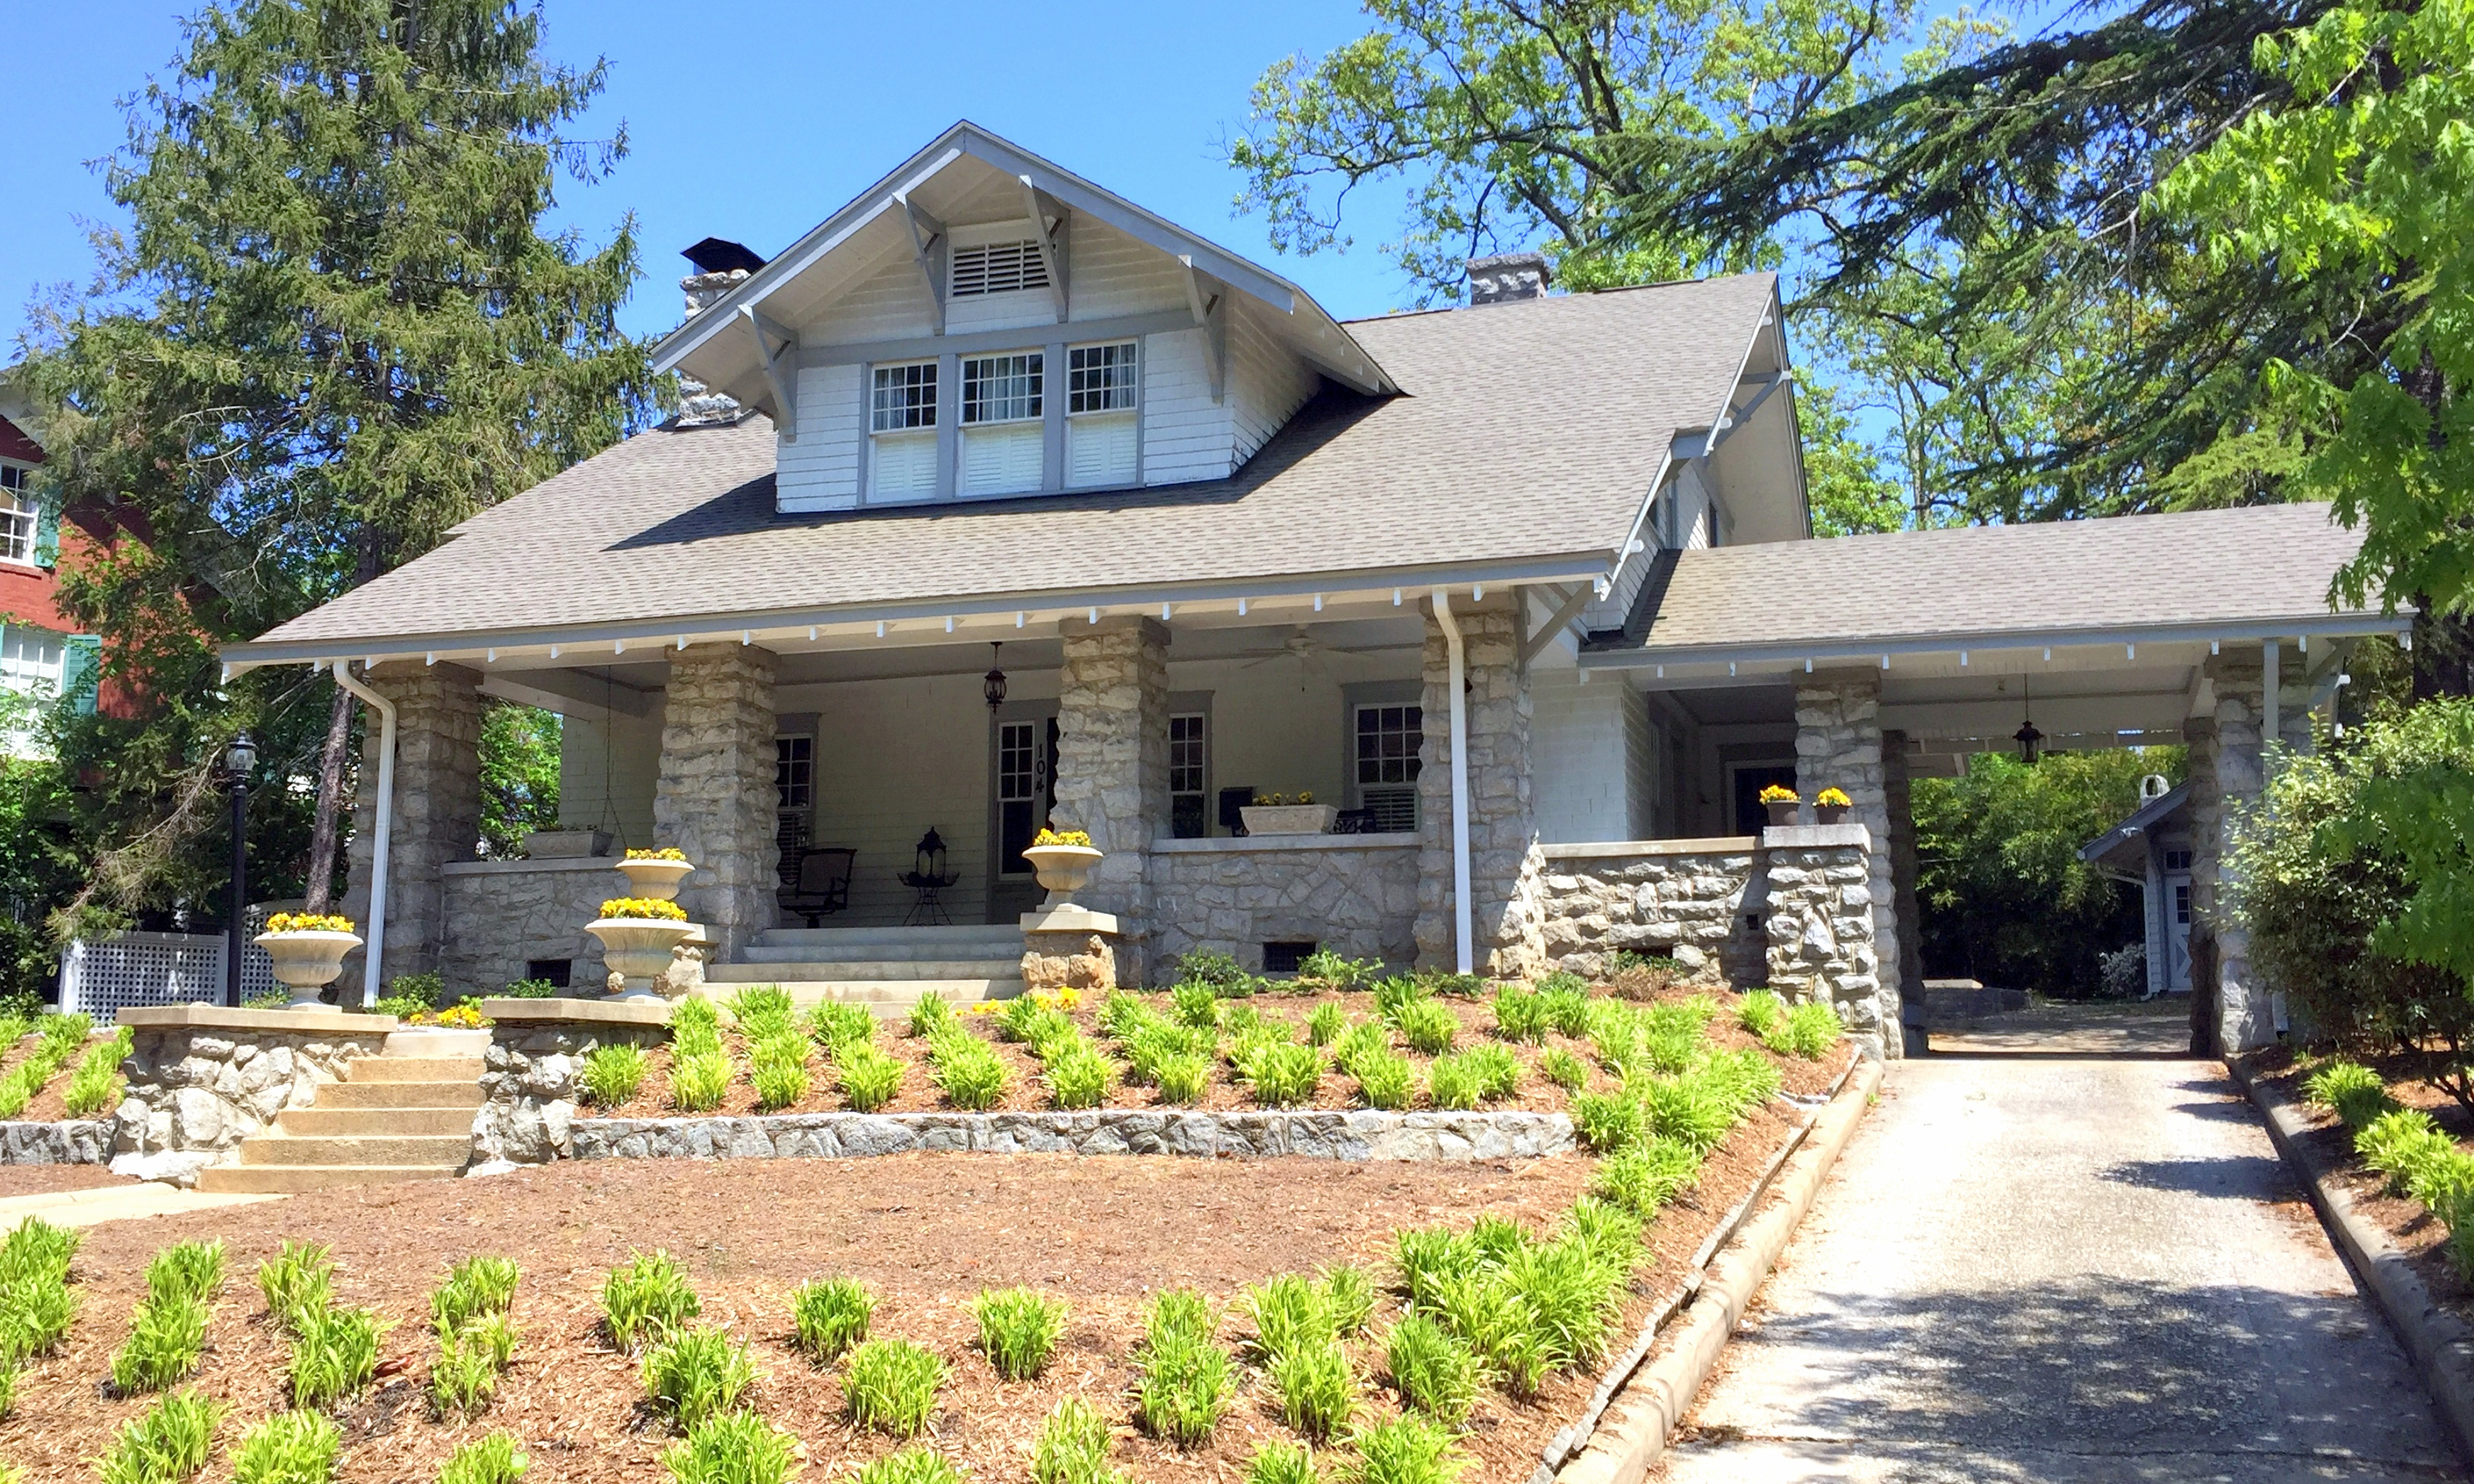 A Craftsman House Built For A Quaker Family On Tour Preservation